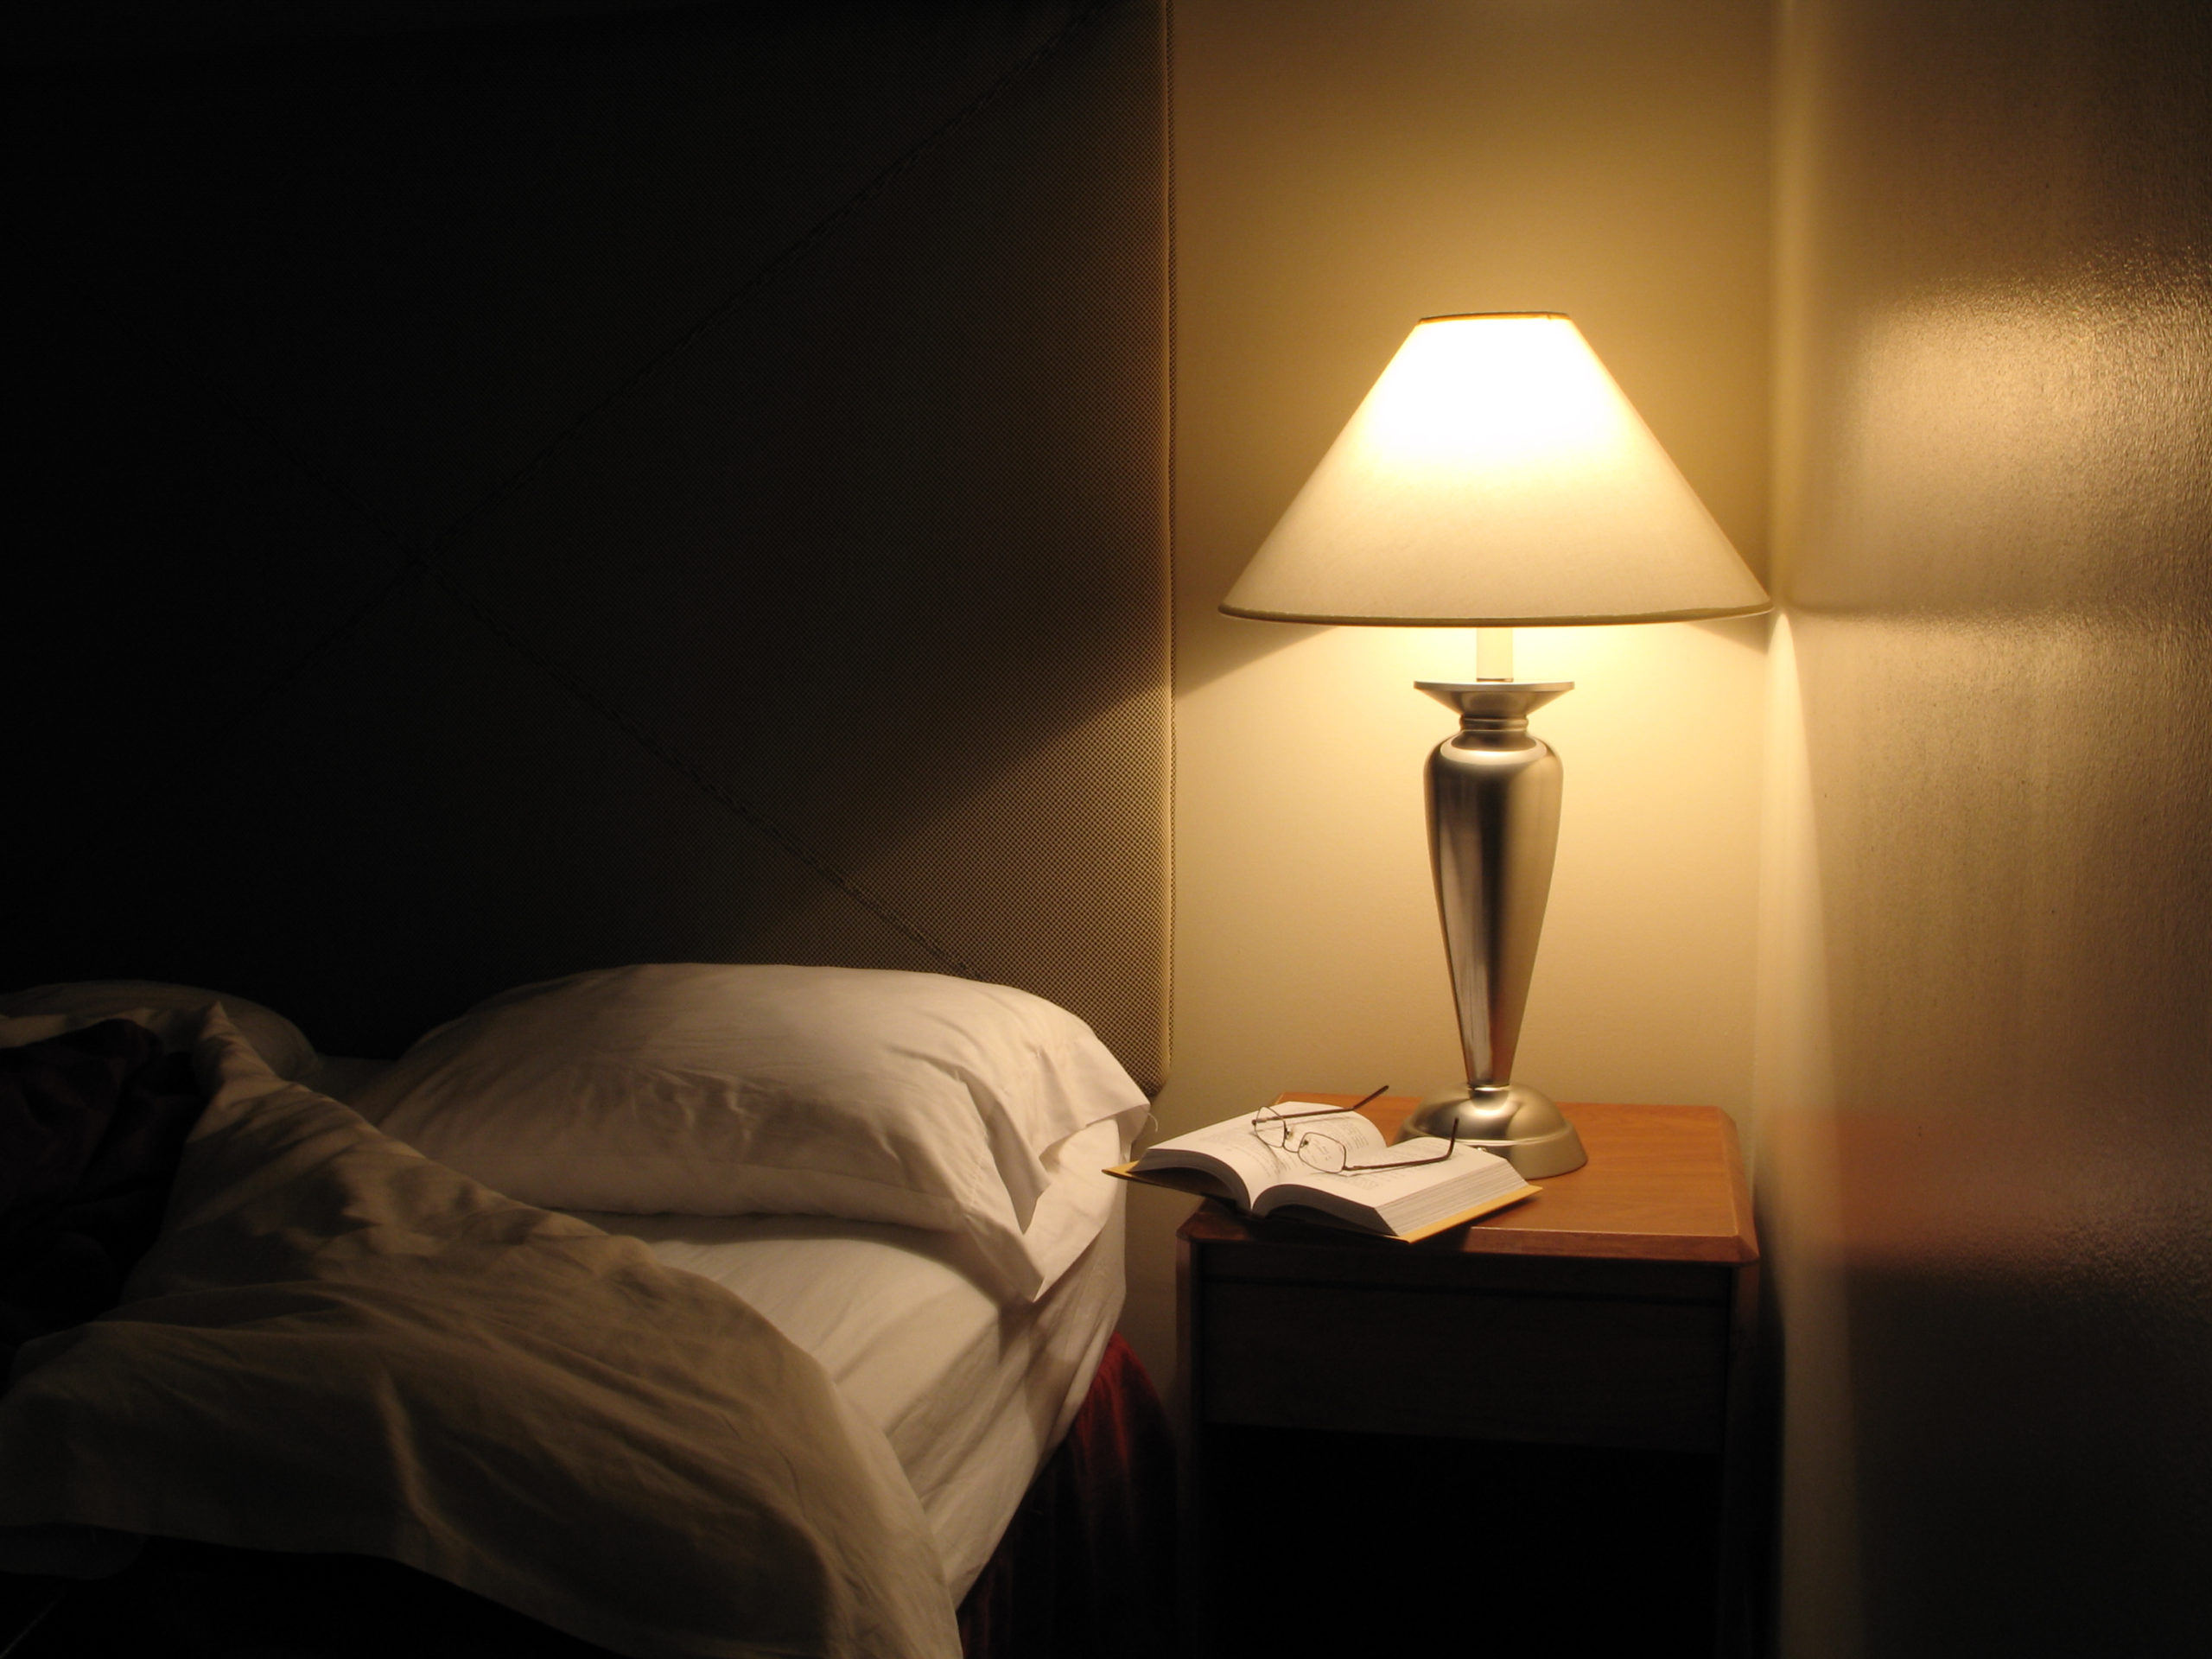 Night scene in hotel room, nightstand with lamp, bed turned down, opened book and reading glasses. 1st in series. Great wall reflection and texture.